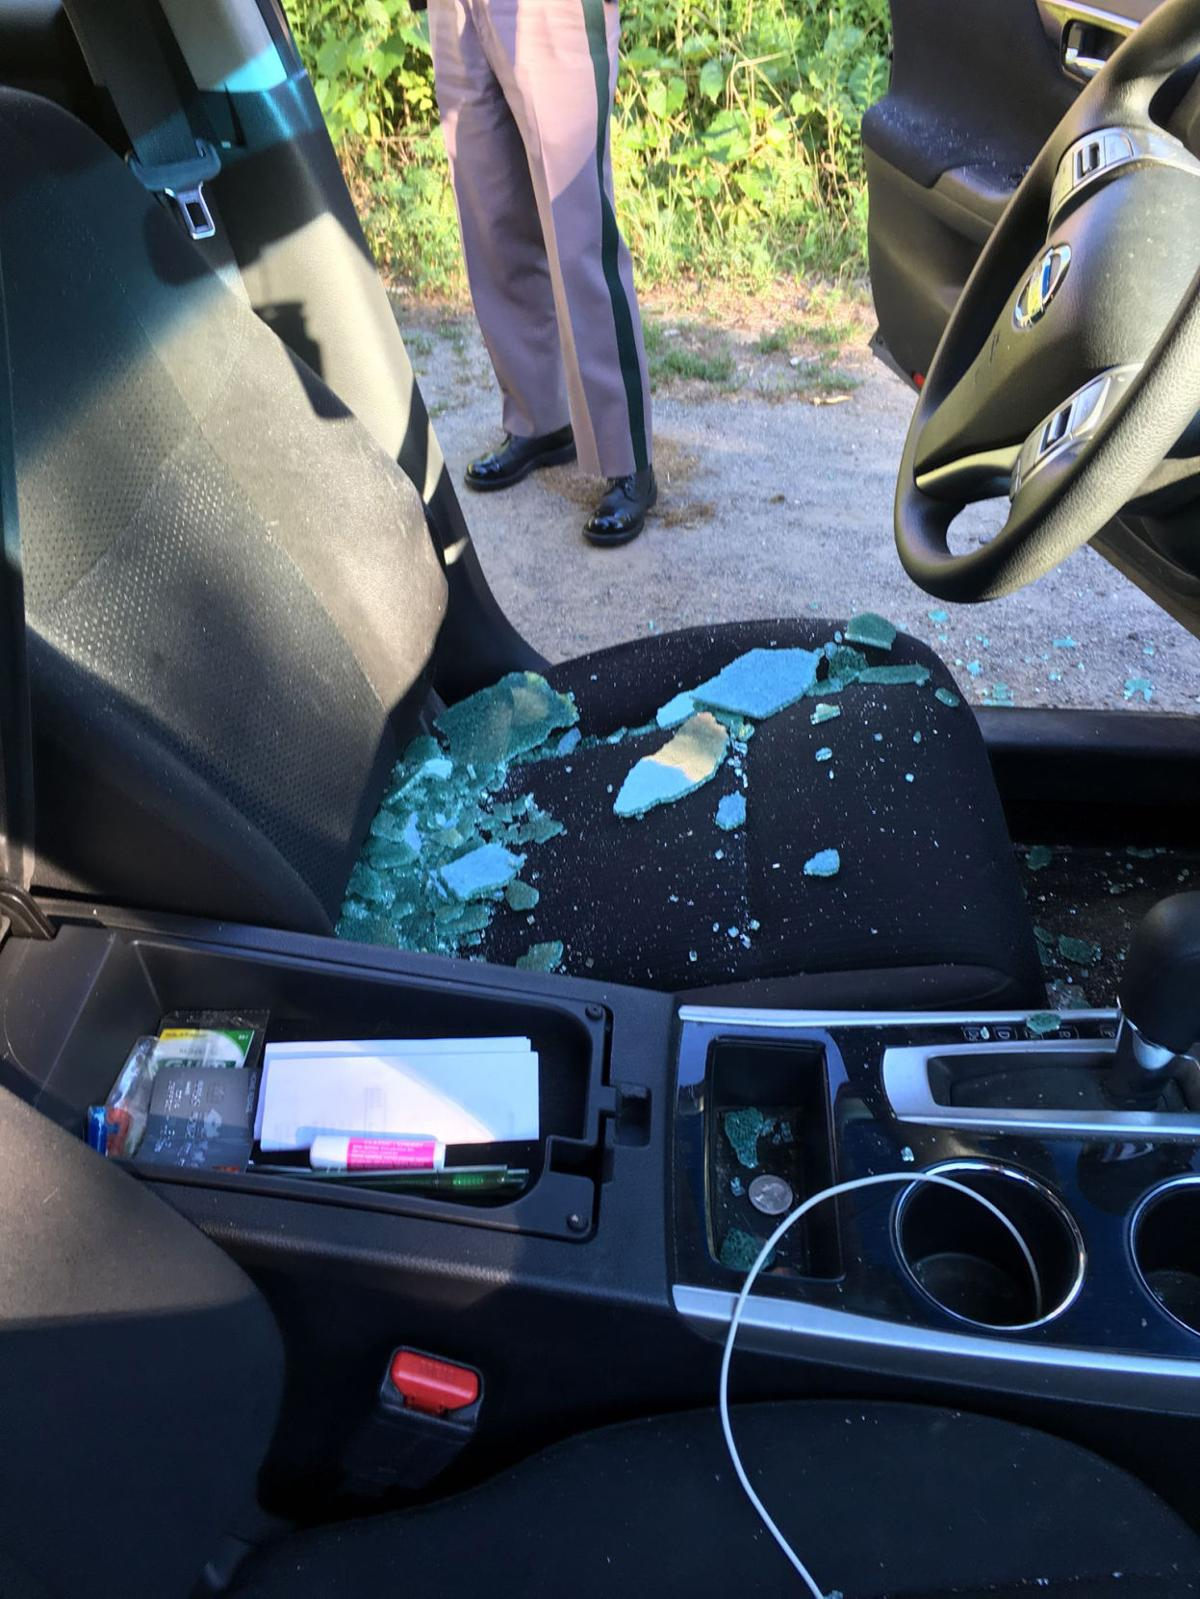 more smash and grab car break ins reported in area local news